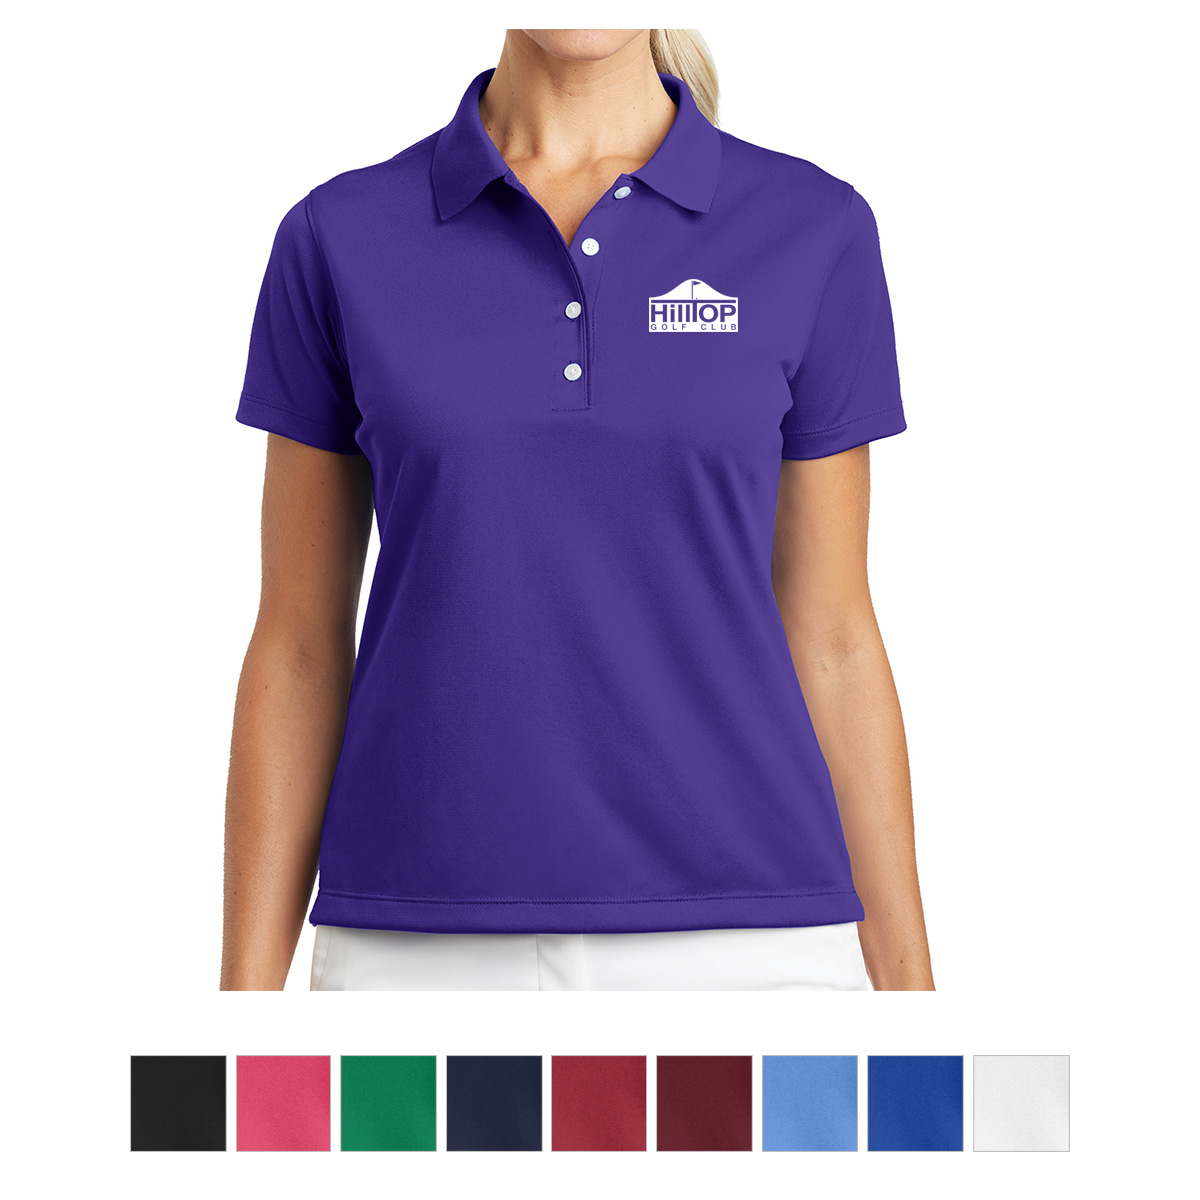 203697 Nike Ladies Tech Basic Dri Fit Polo Hit Promotional Products